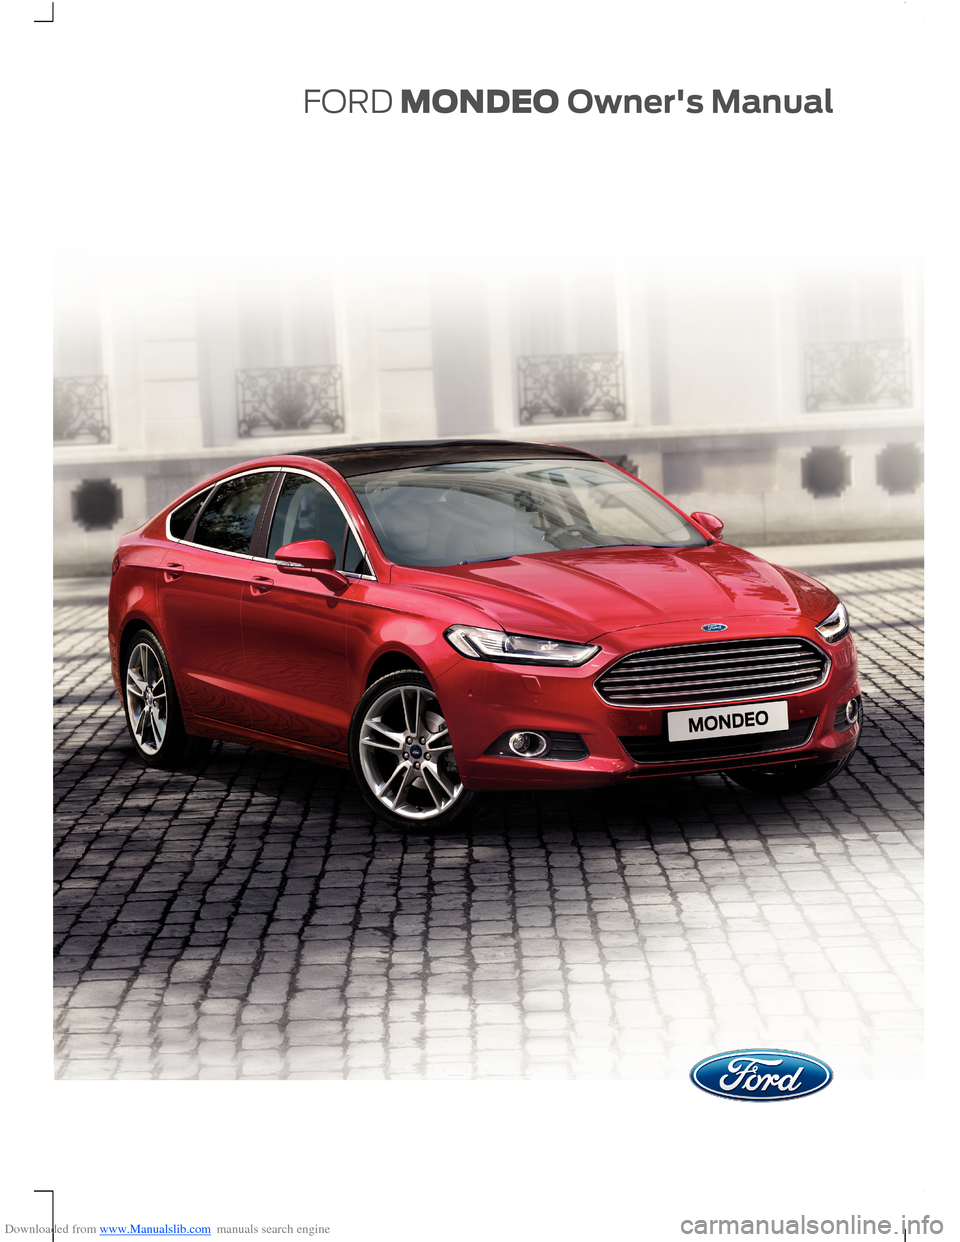 FORD MONDEO 2014 4.G Owners Manual, Page 1